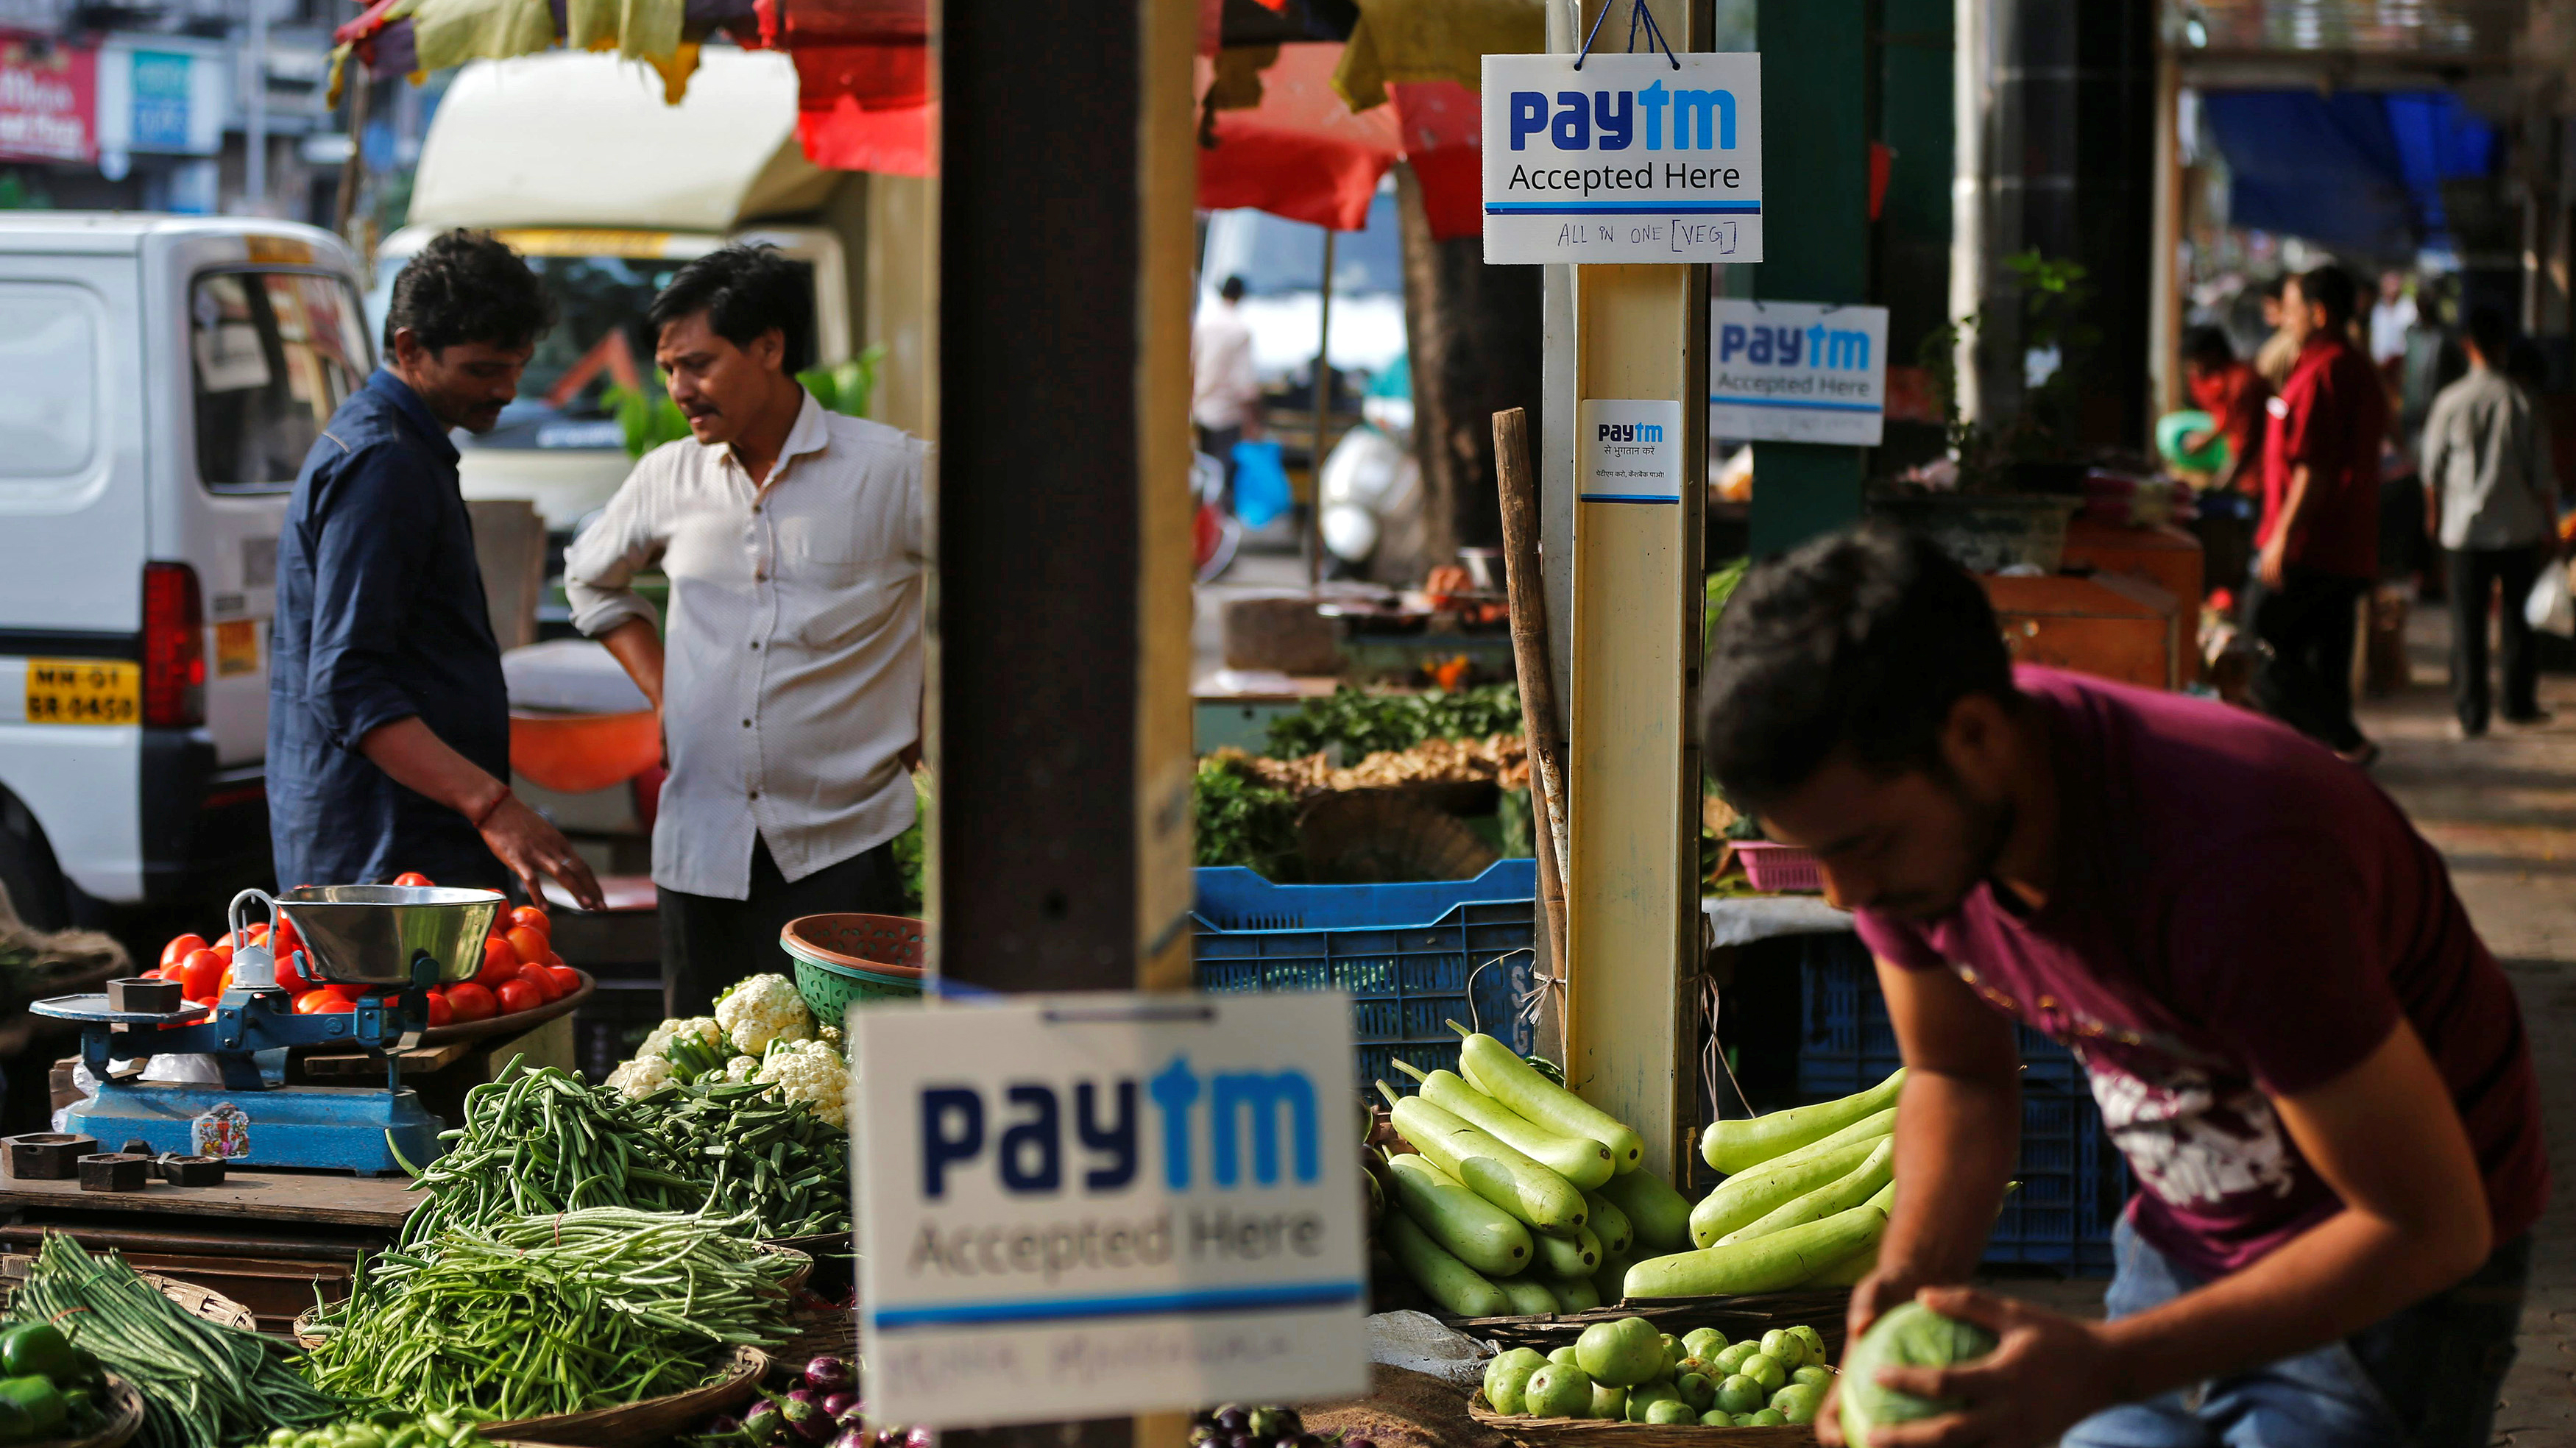 2016Advertisement boards of Paytm, a digital wallet company, are seen placed at stalls of roadside vegetable vendors as they wait for customers in Mumbai, India, November 19, 2016. Picture taken November 19, 2016. REUTERS/Shailesh Andrade